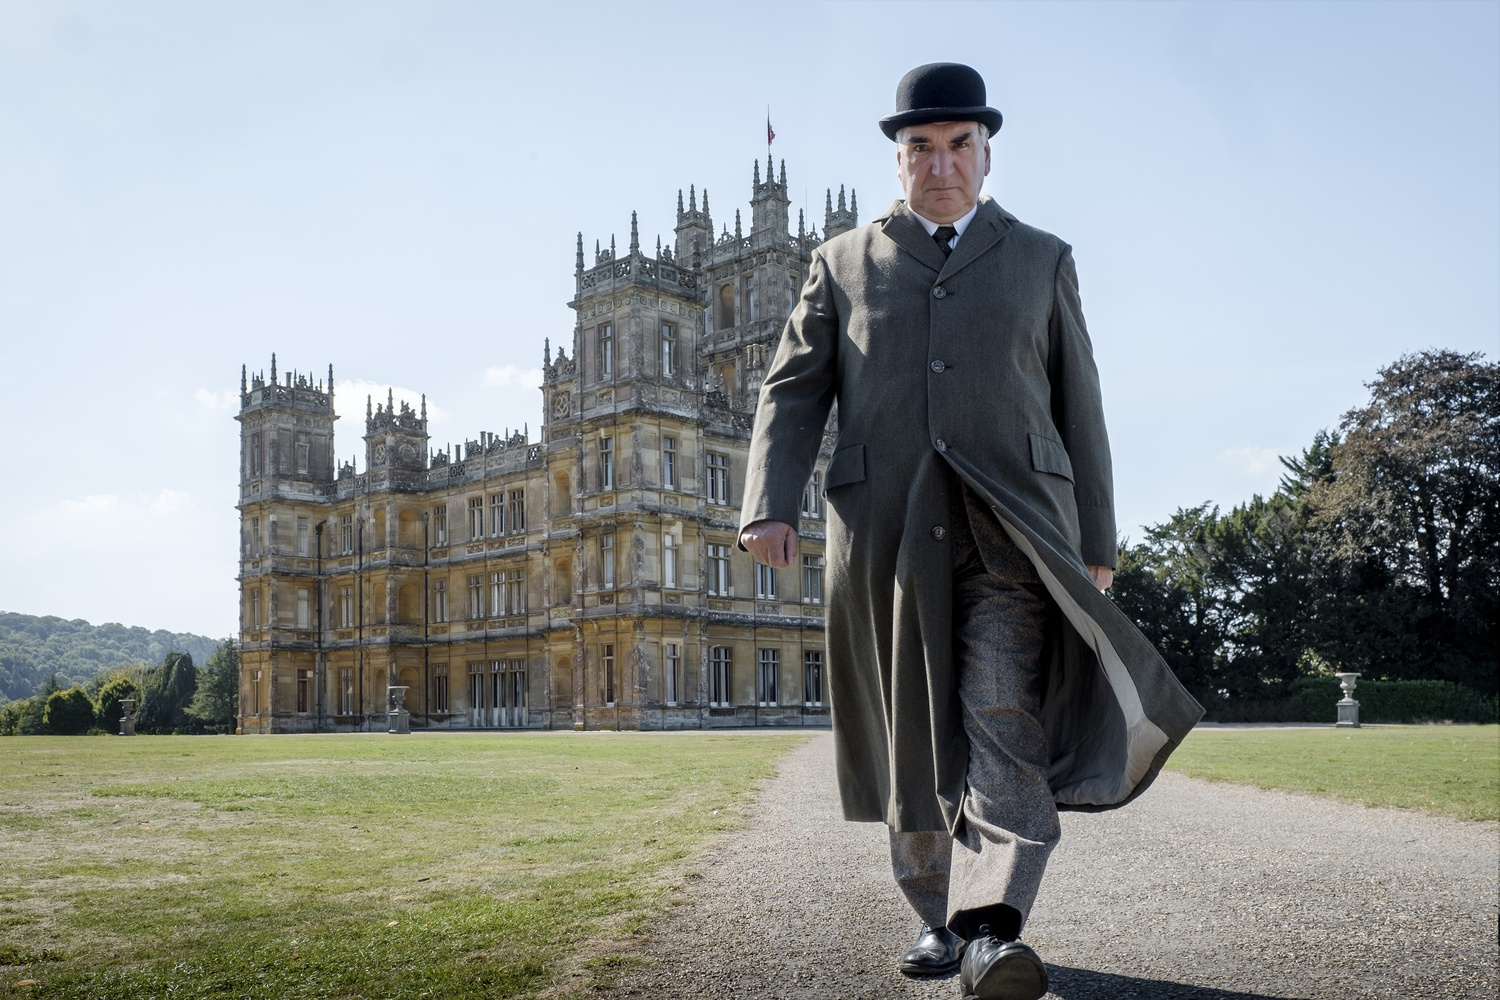 """Jim Carter stars as Mr. Carson in """"Downton Abbey"""" (2019), directed by Michael Engler and written by Julian Fellowes."""